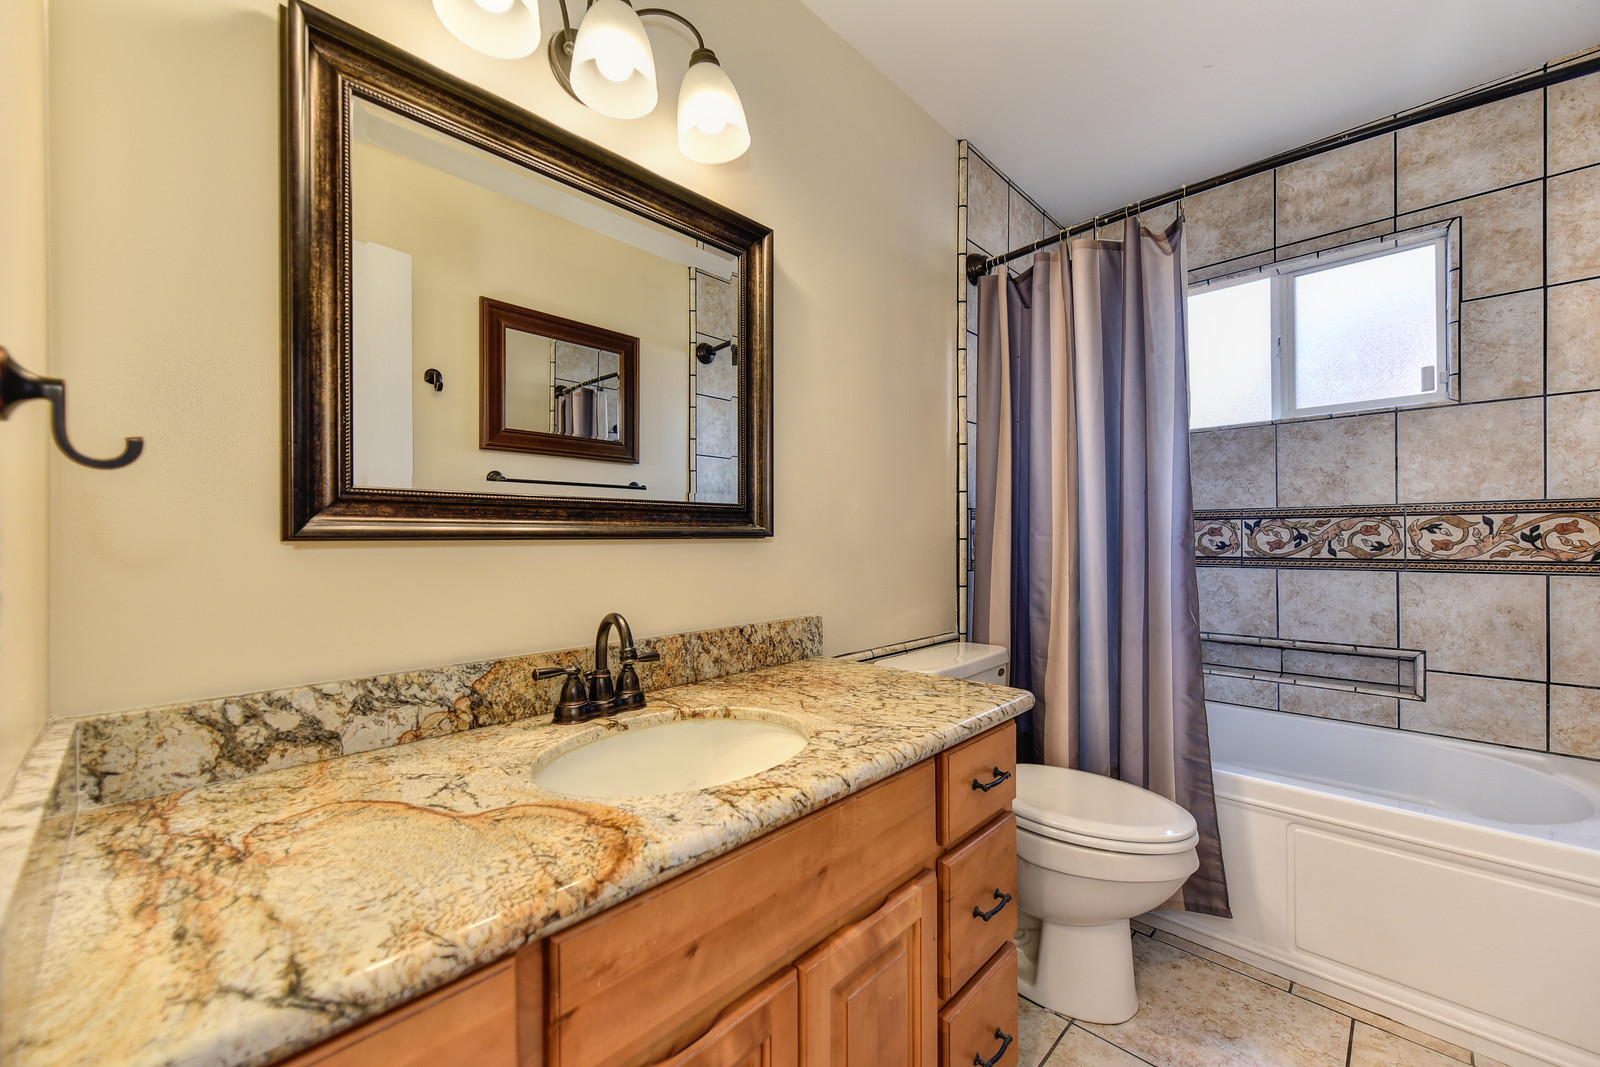 Realtor in Carmichael California | 5243 Nyoda Way hall bathroom | Just listed for sale